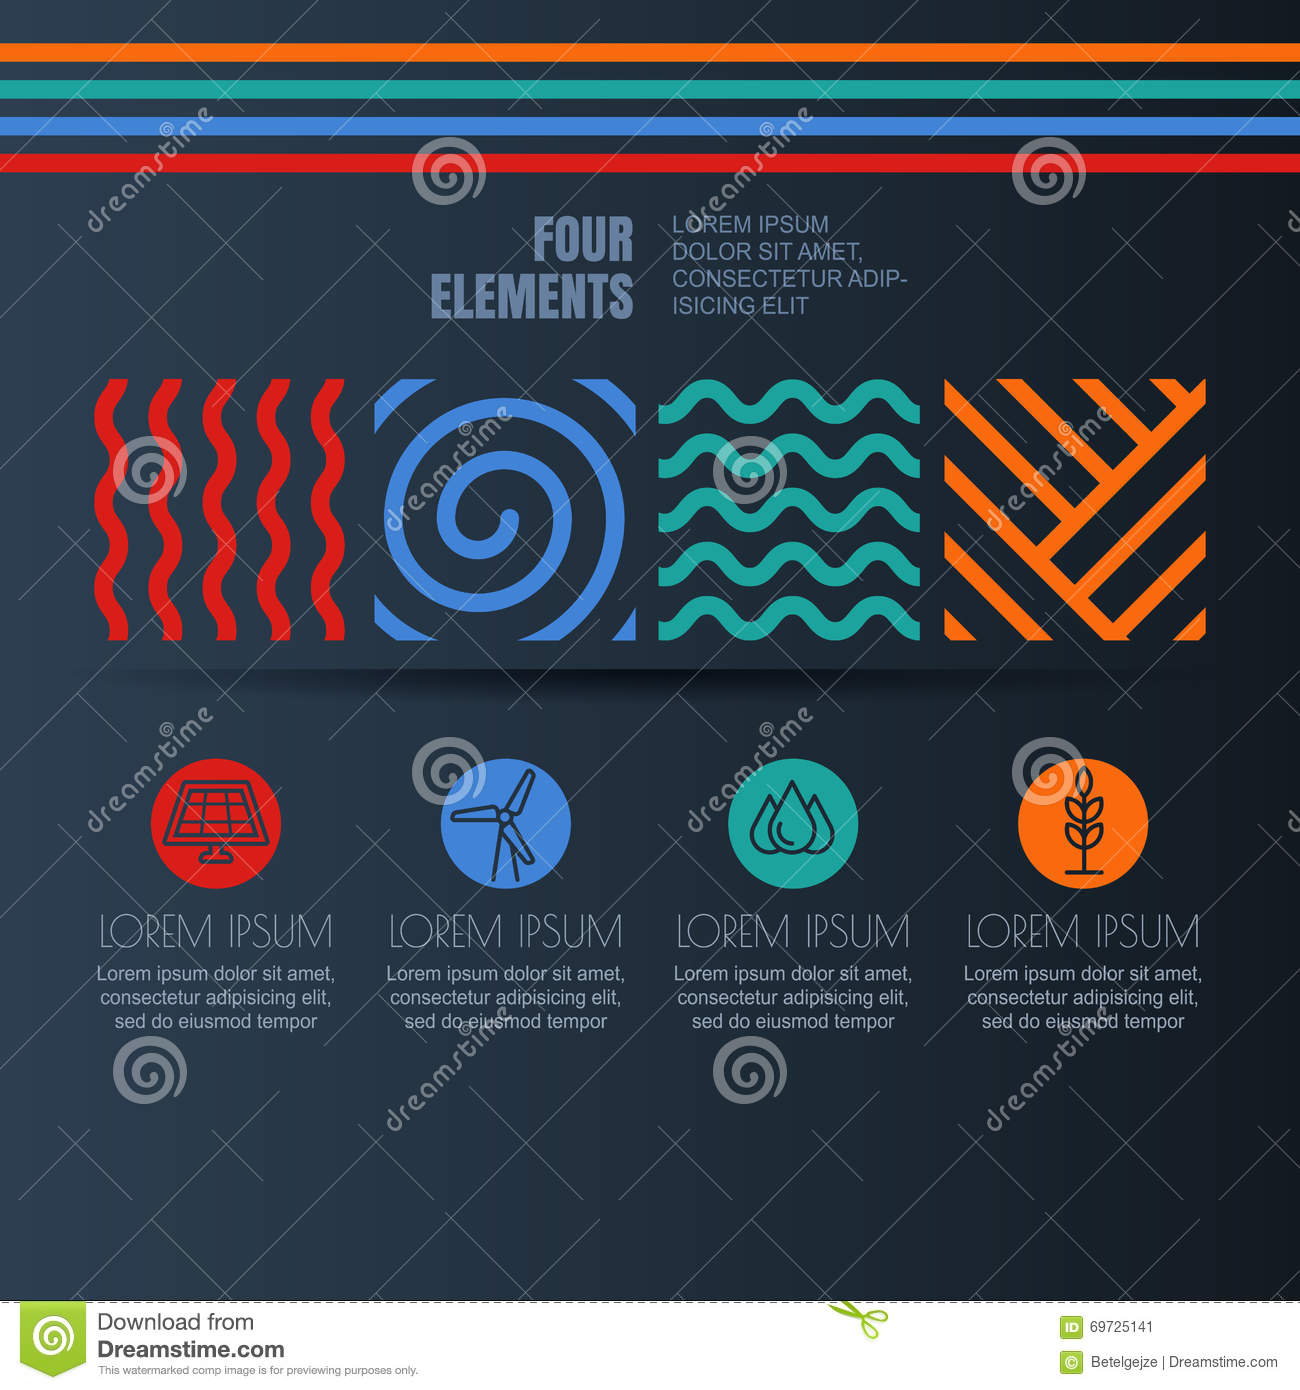 Four Elements Abstract Linear Symbols And Alternative Energy Icons